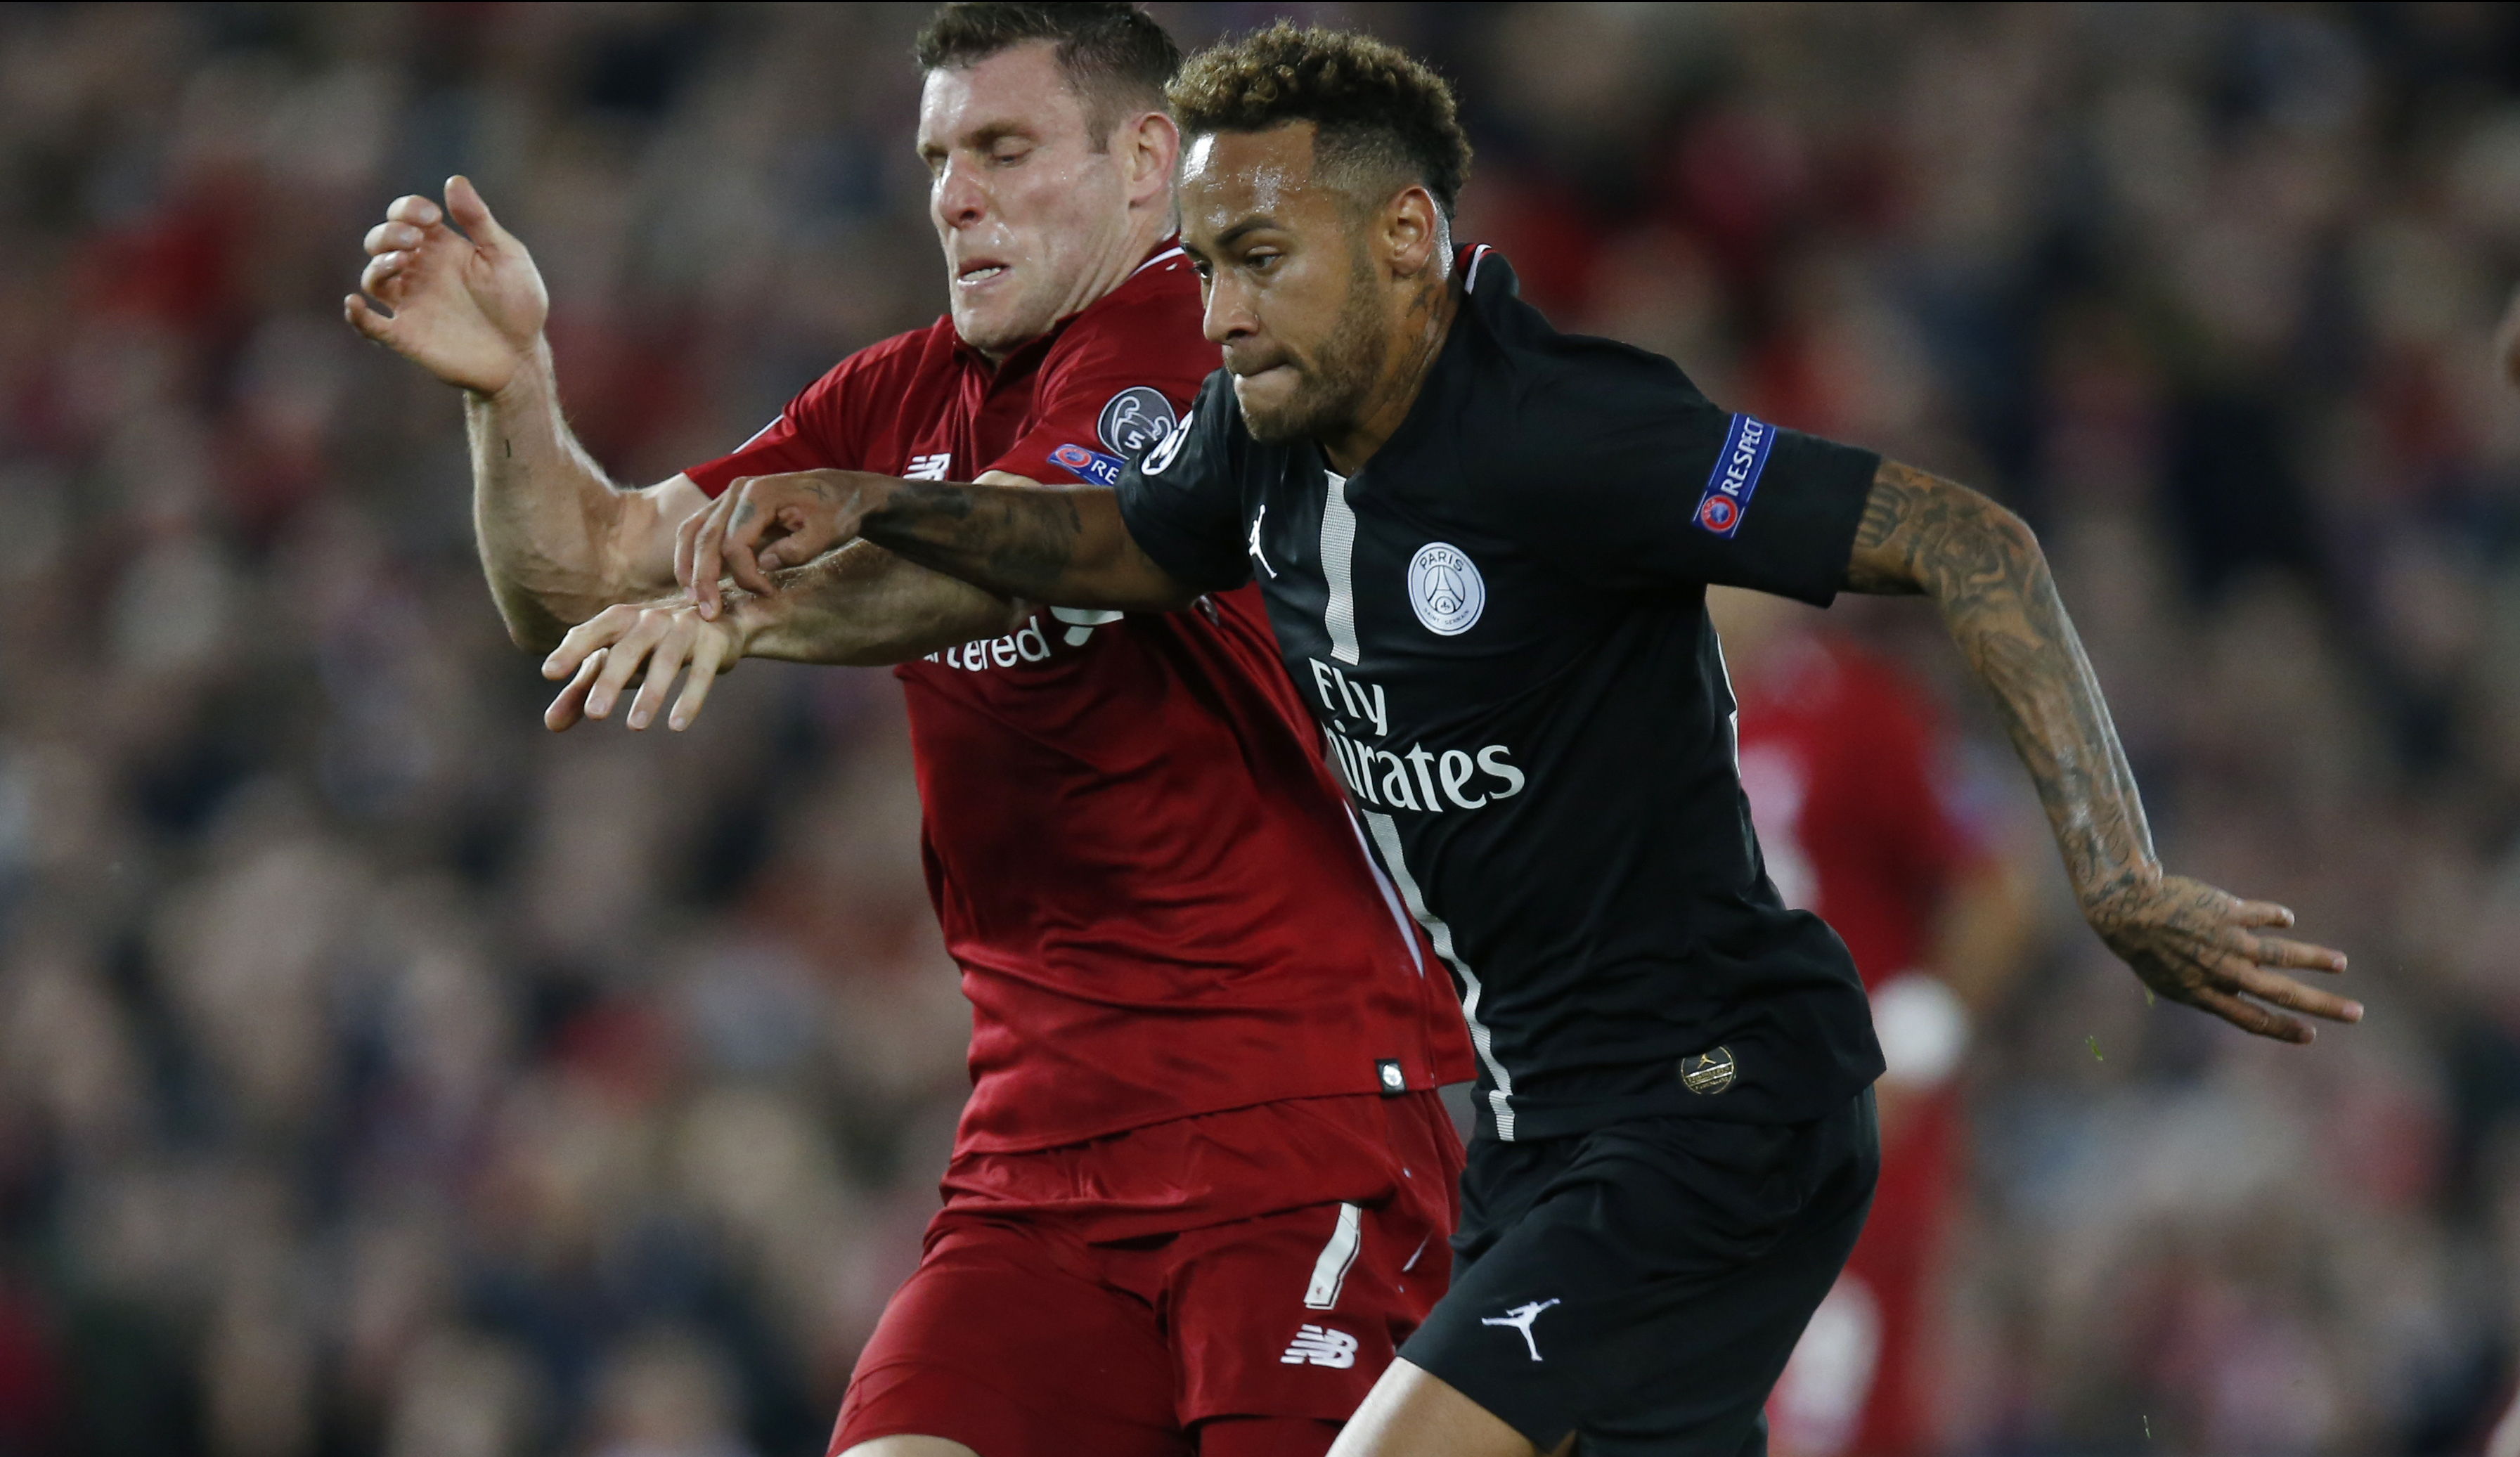 PSG V LIVERPOOL – THE PREVIEW